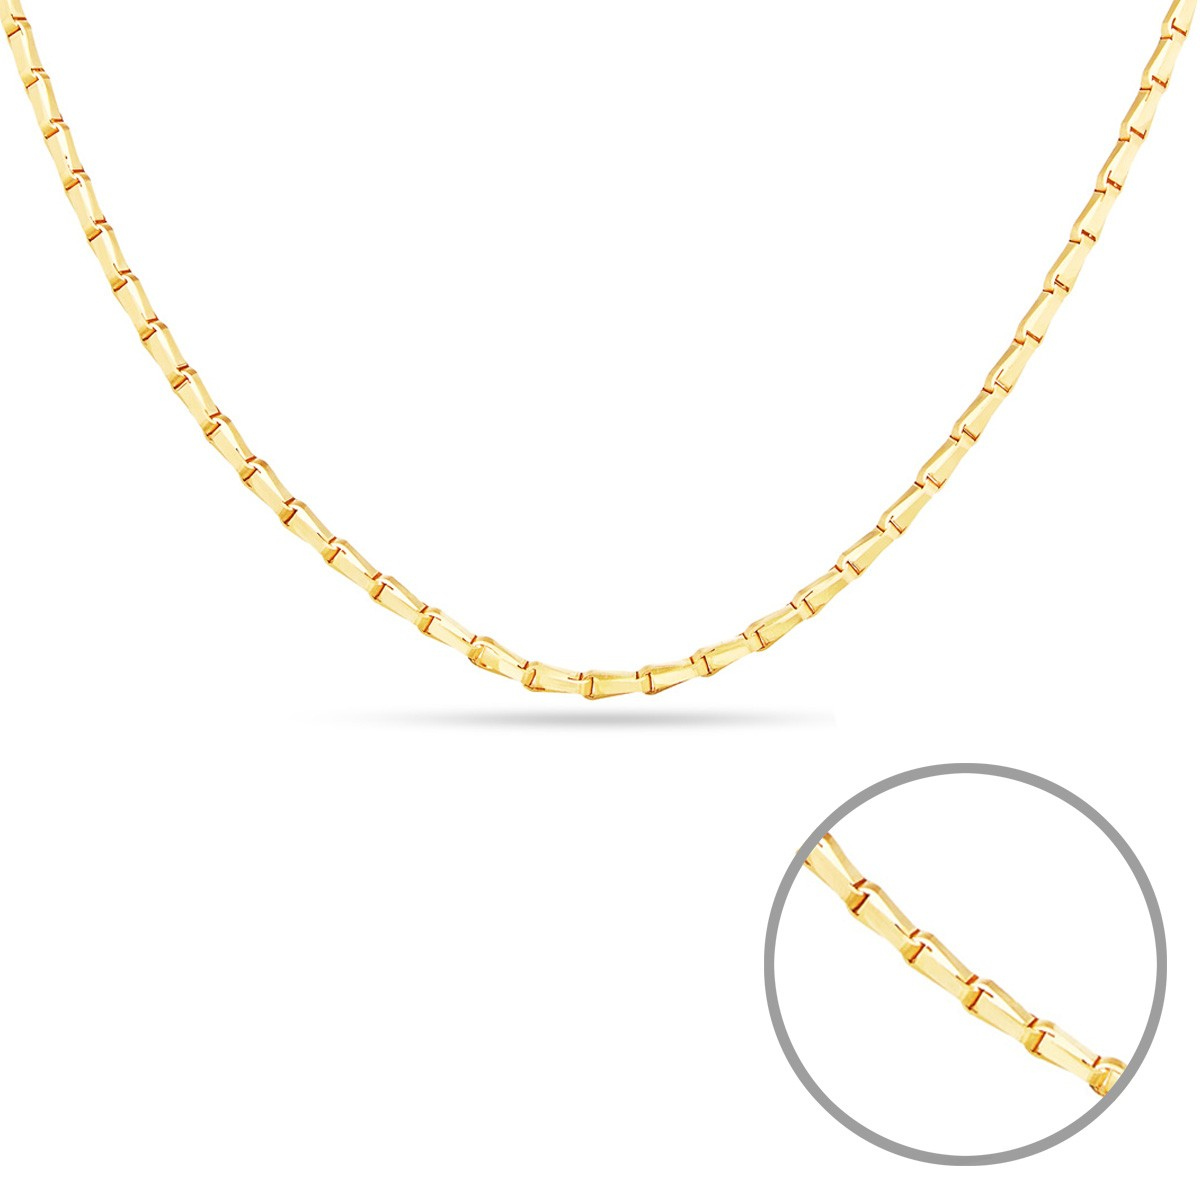 sterling get moon on women high silver w shipping com chains chain aceworks and cut ball for wholesale real quality necklace free buy aliexpress